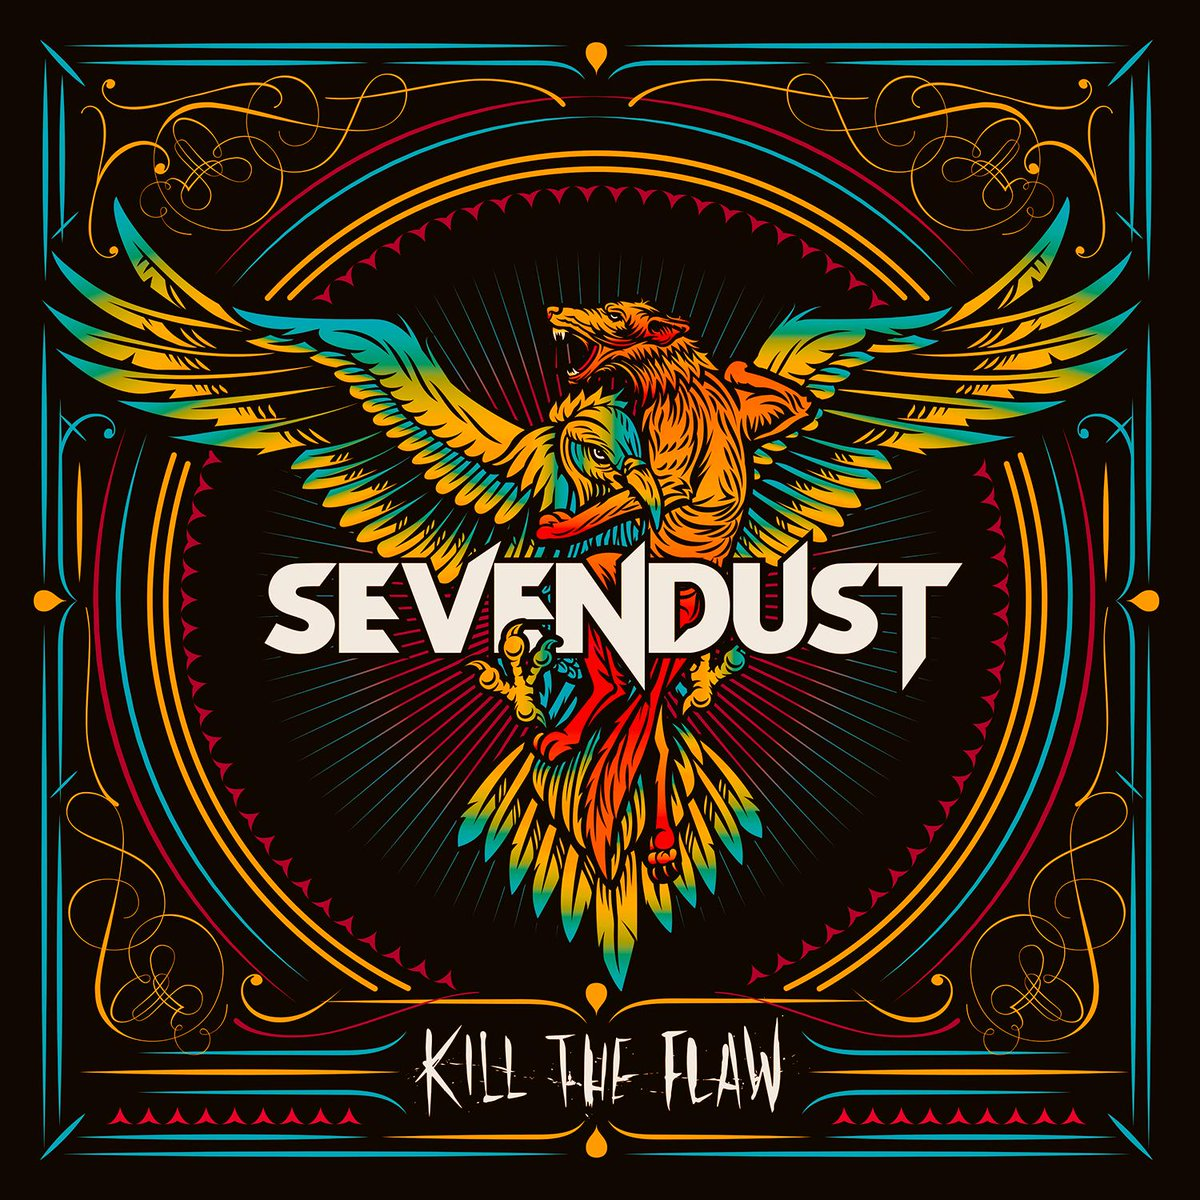 SEVENDUST ANNOUNCES NEW ALBUM - KILL THE FLAW - DUE OCTOBER 2! Details and pre-order at http://t.co/uZeSkG1e4y http://t.co/WiLebrrO9t